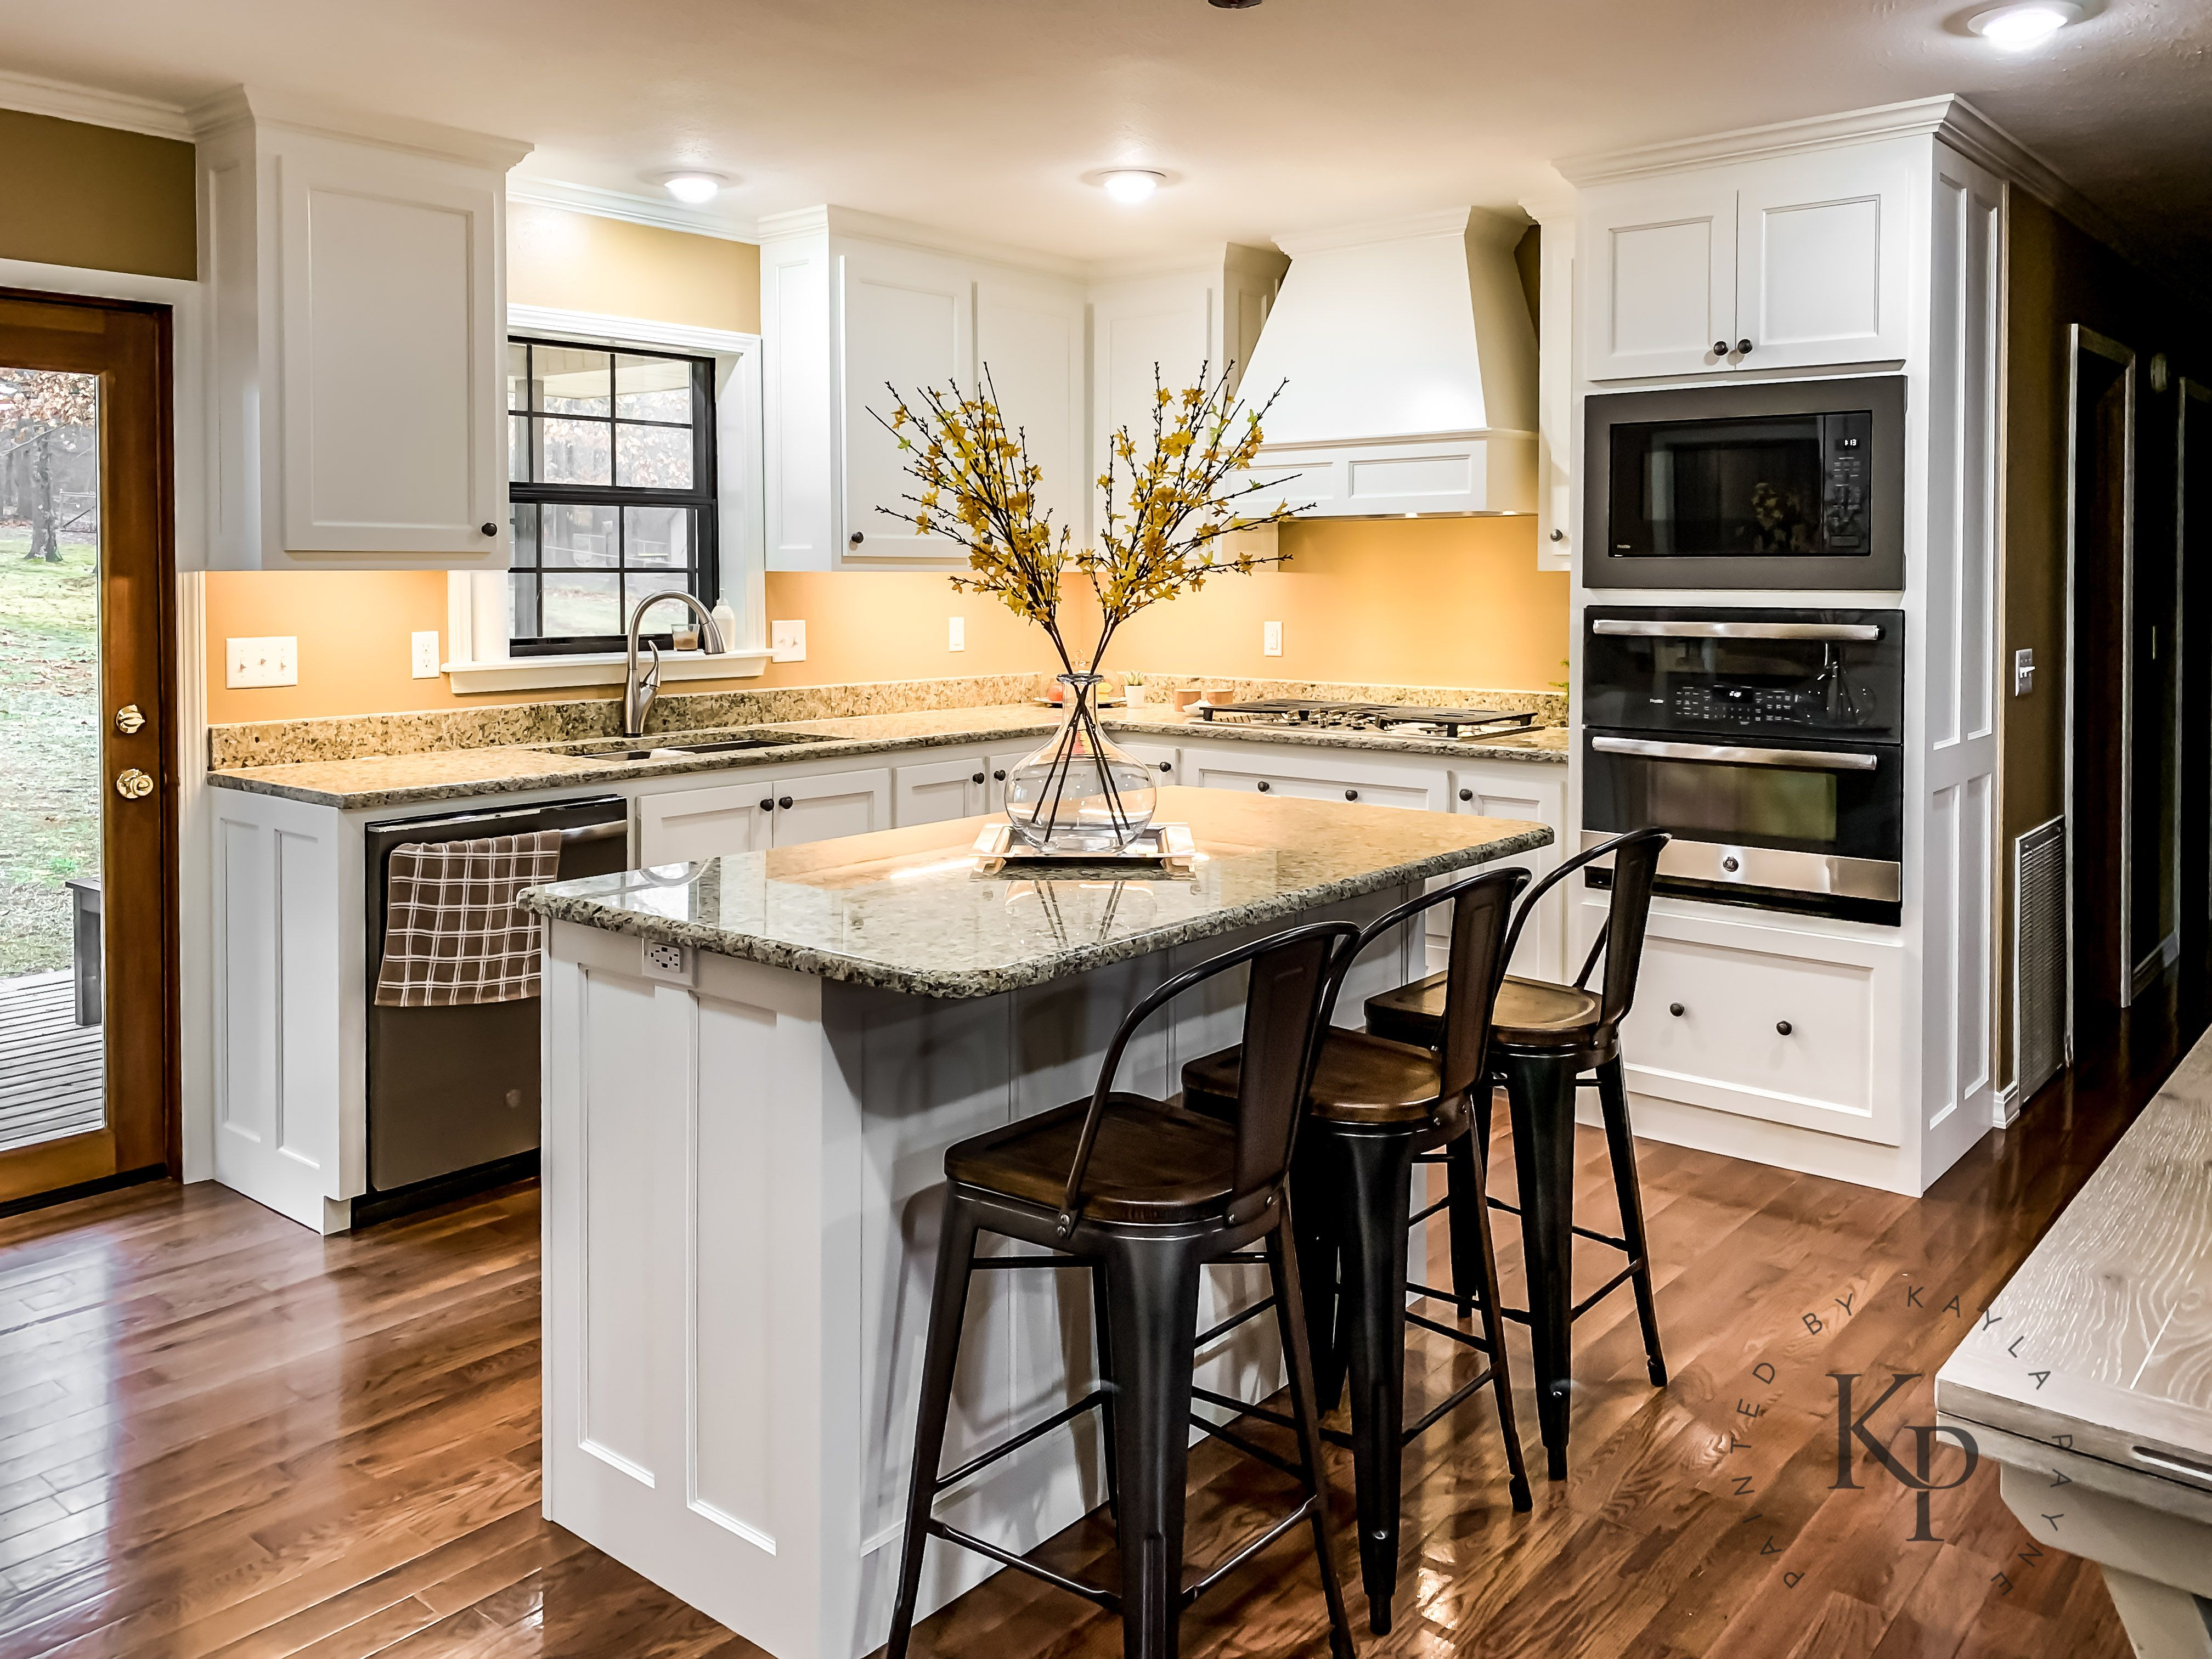 Kitchen Cabinets In Sherwin Williams Dover White Sherwin Williams Dover White Kitchen Dover White